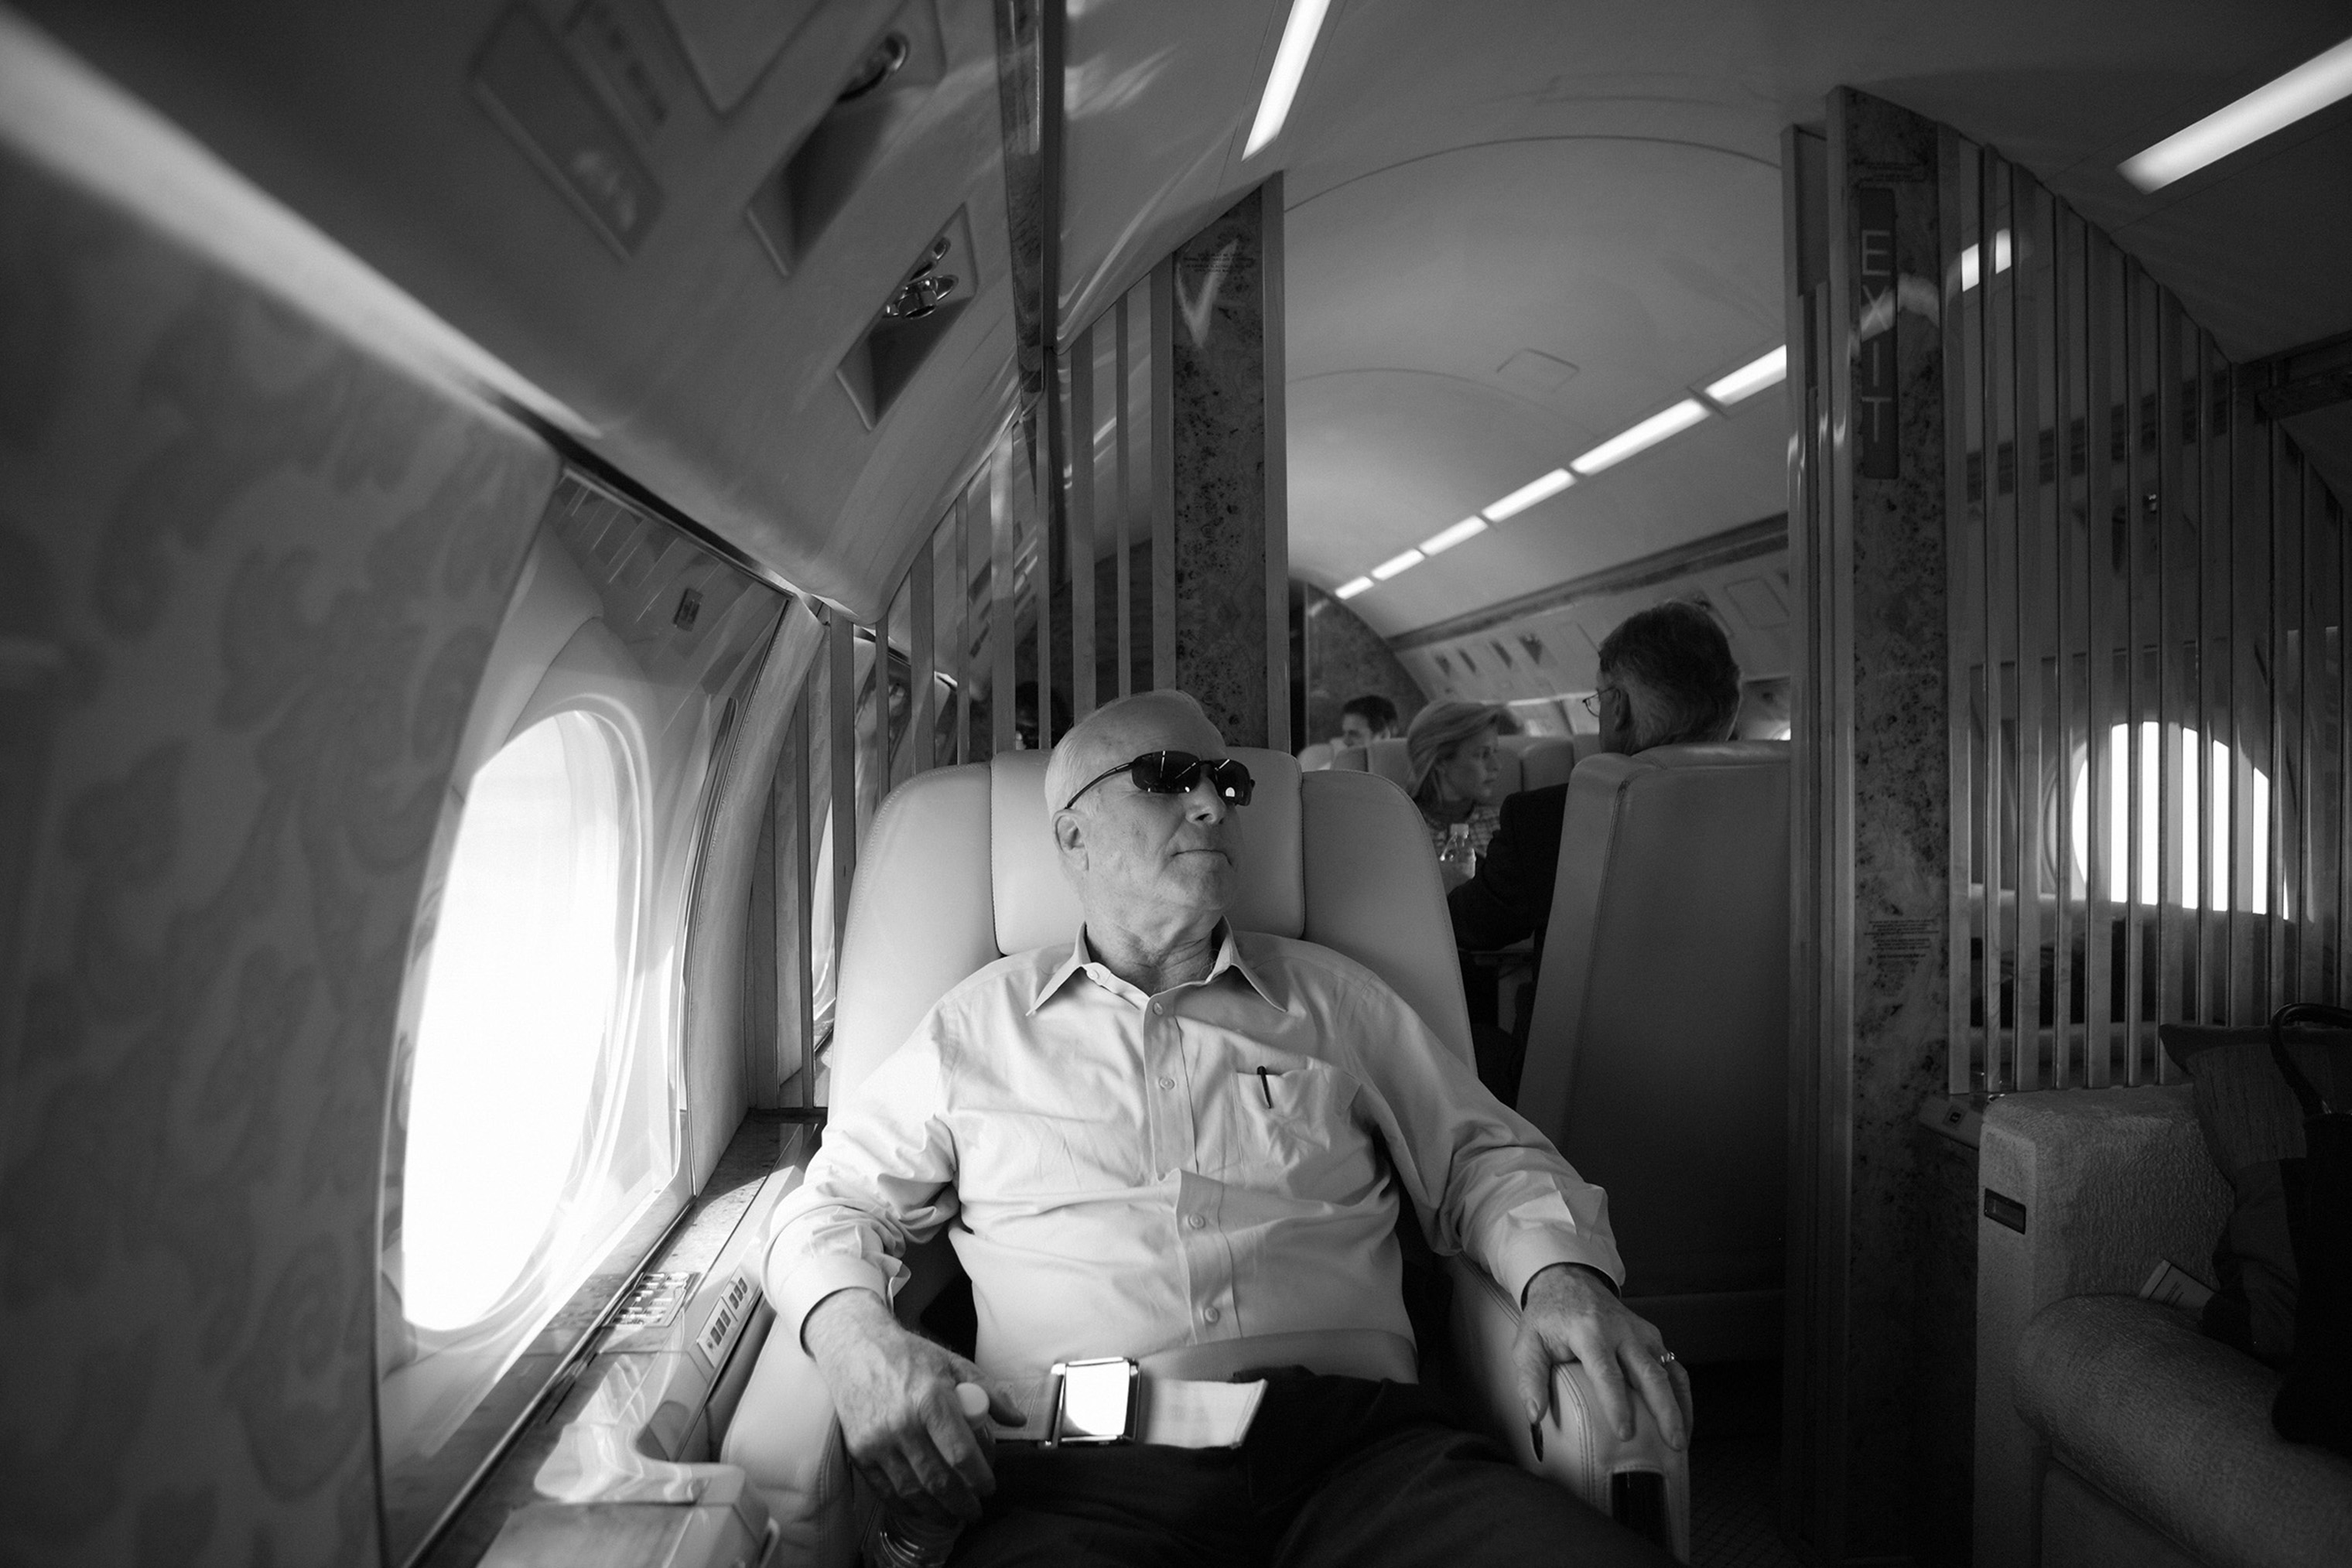 Sen. John McCain on board his private plane during presidential campaign stops in S.C. on April 26, 2007.